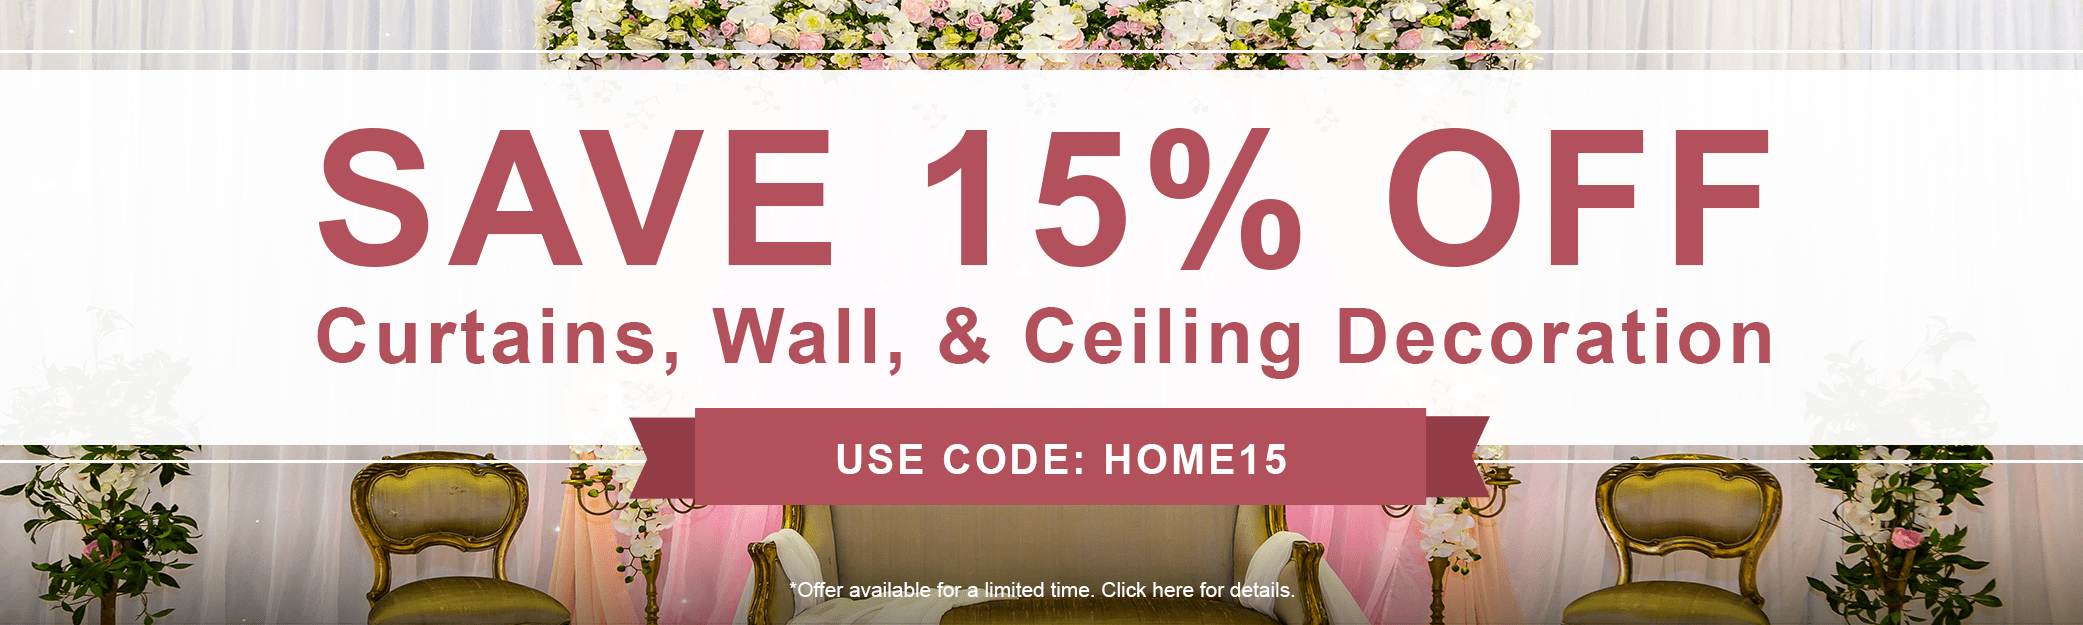 15% off Curtains, Wall & Ceiling Decoration